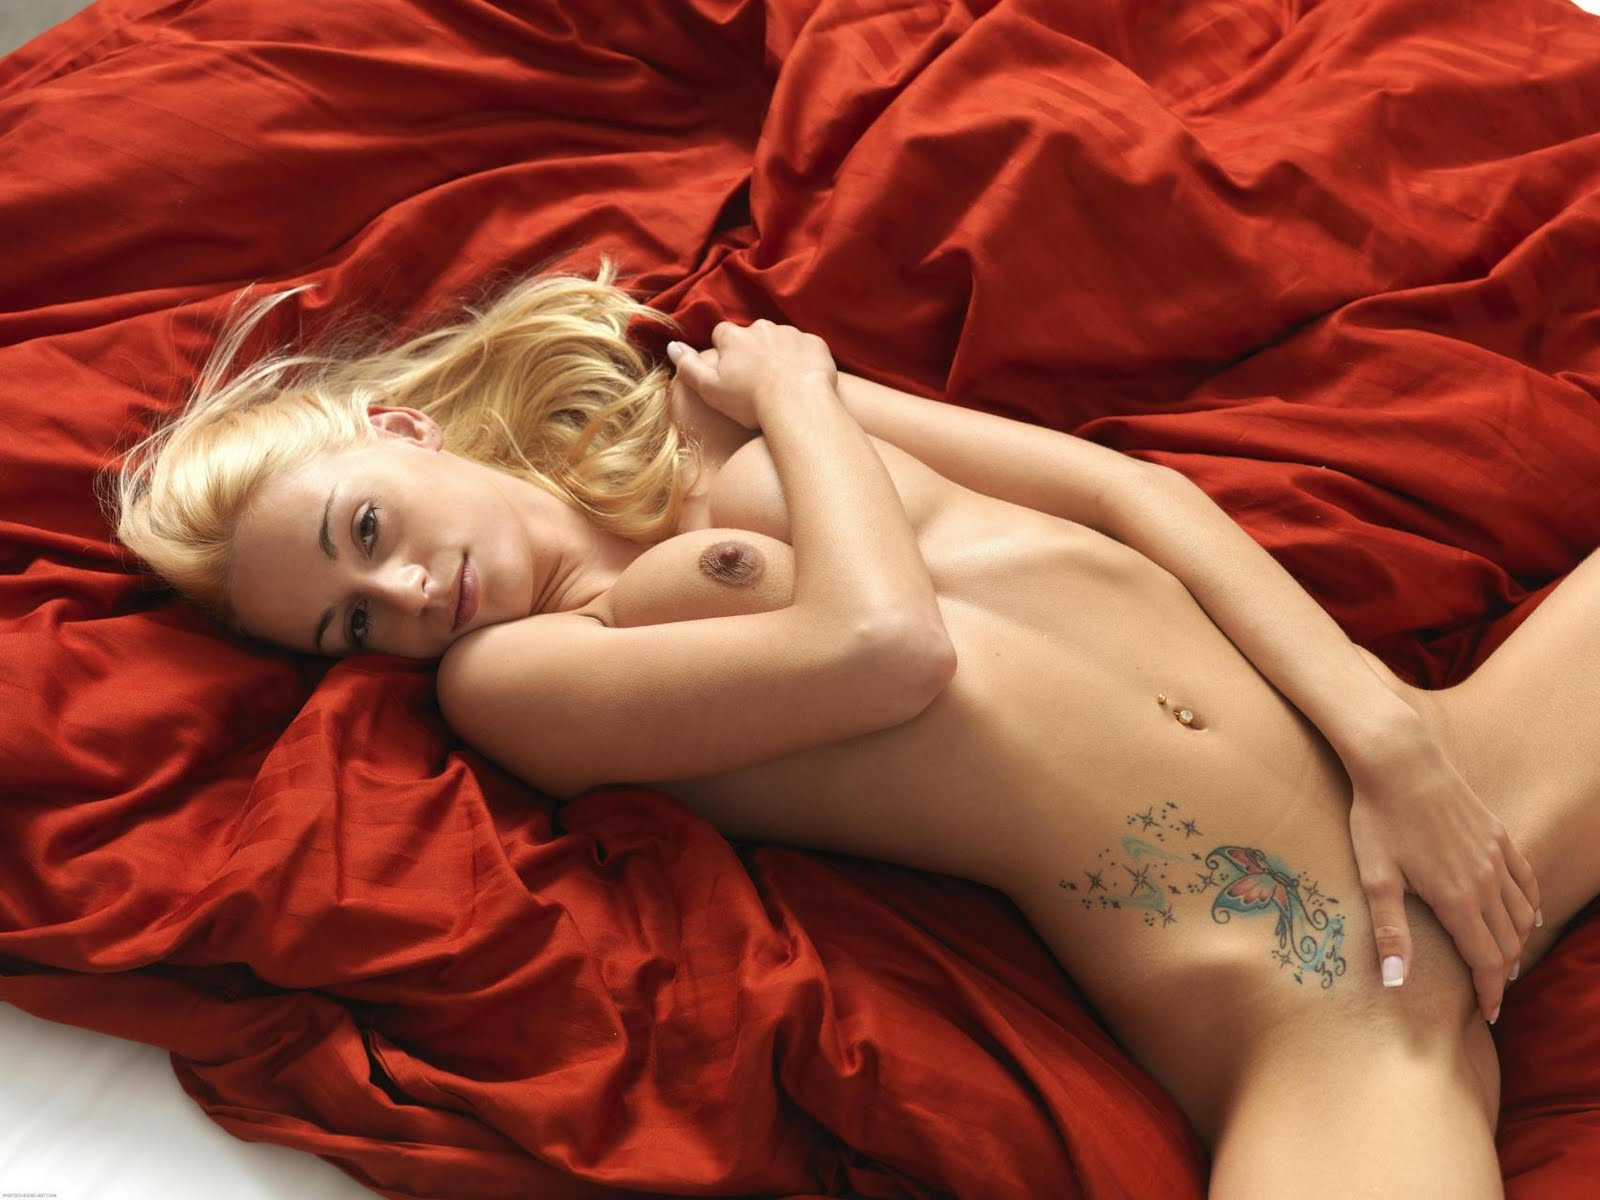 Hot Nude Blonde Girls With Tattoos